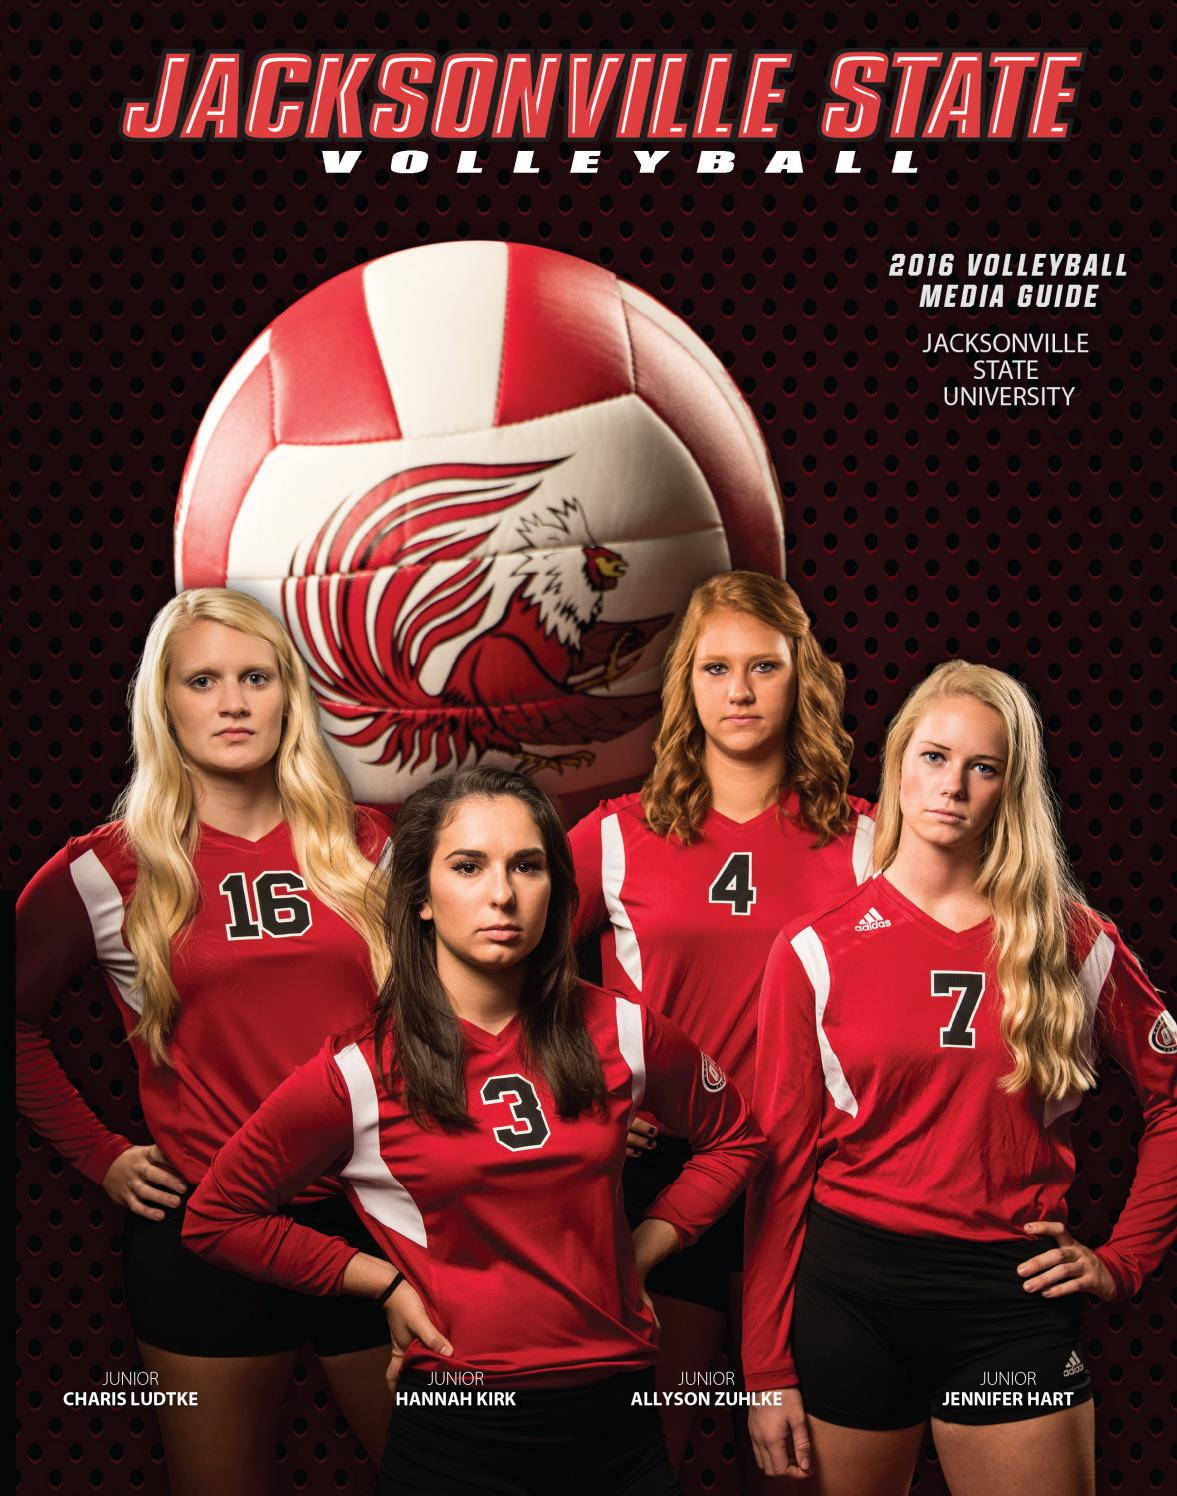 2016 Jacksonville State Volleyball Media Guide By Jacksonville State Athletics Issuu Jennifer love hewitt had started her career when she was young, and she was a child actress and also a singer. 2016 jacksonville state volleyball